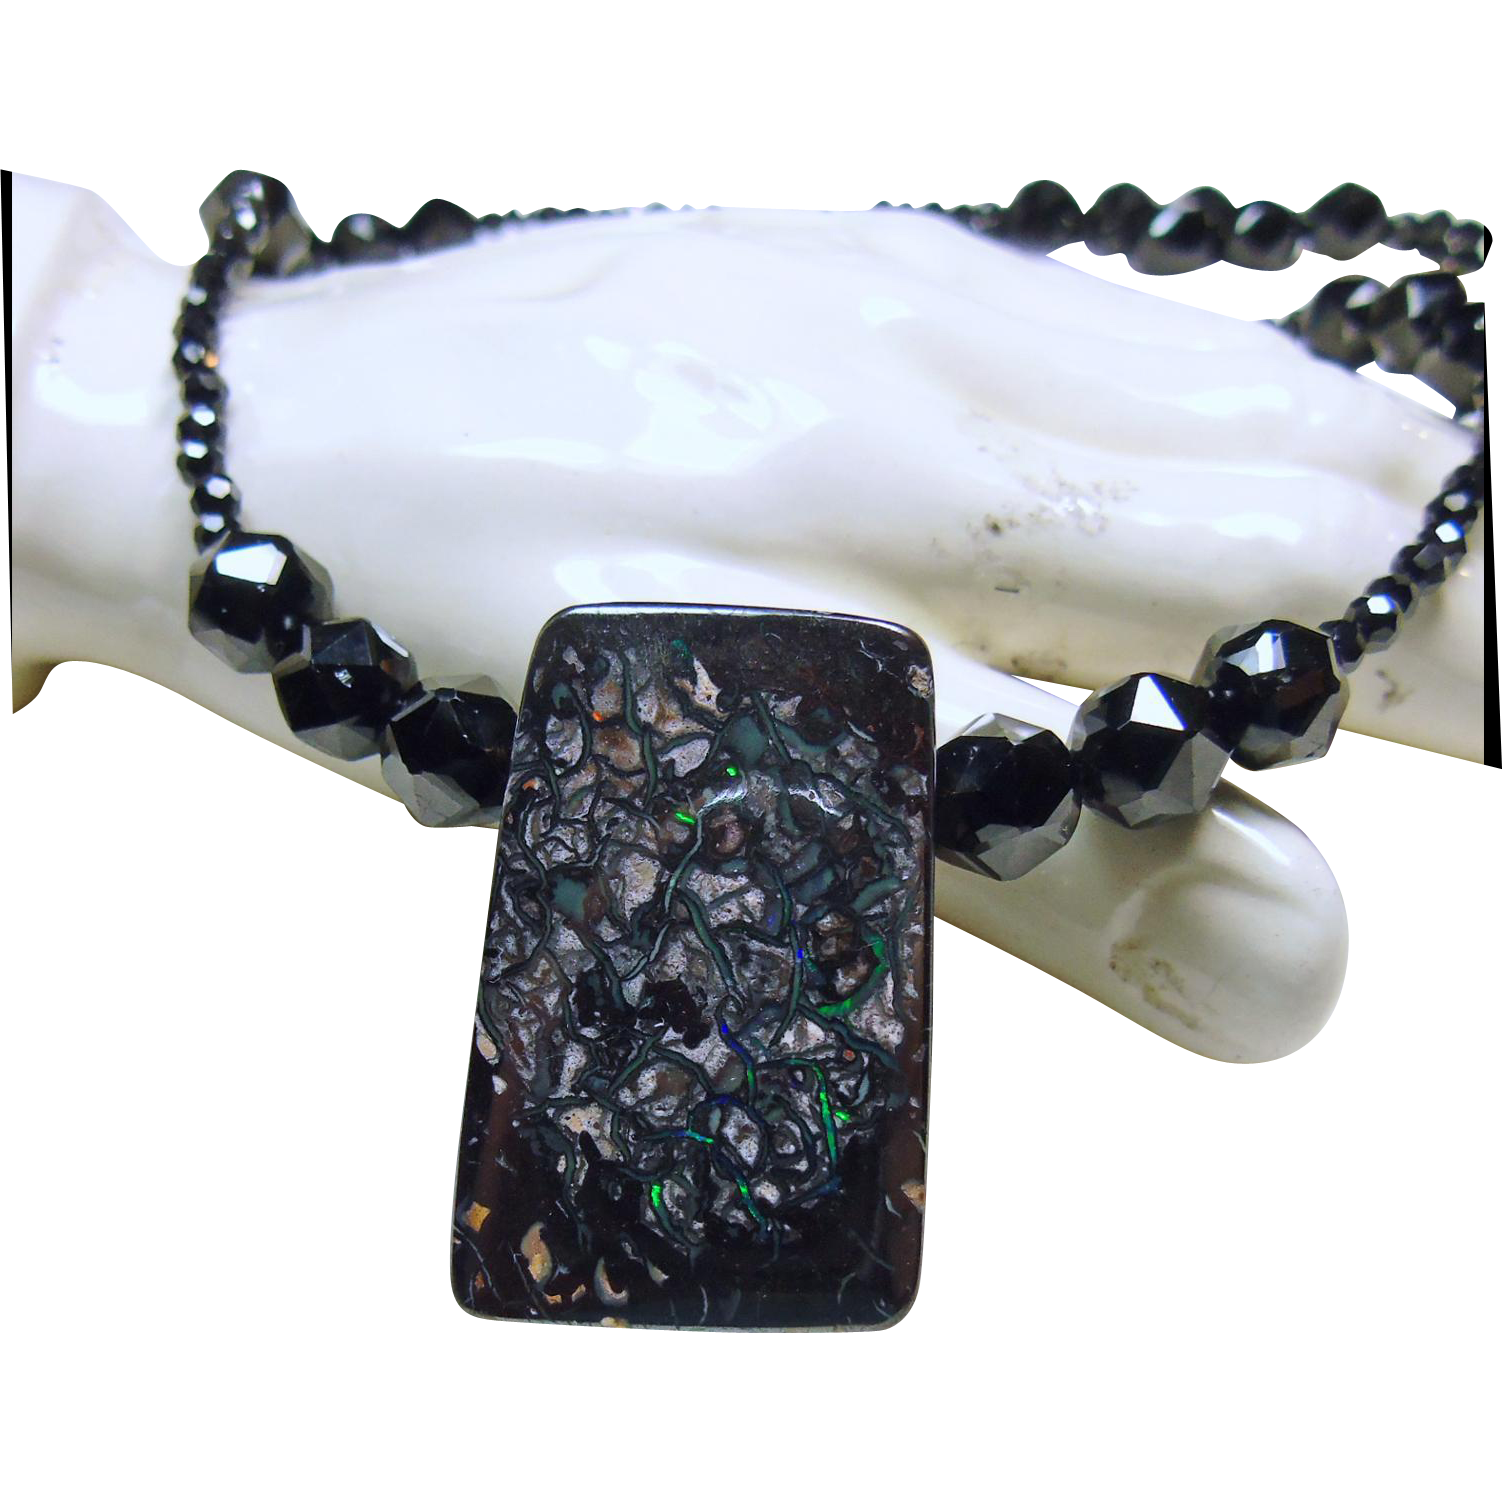 Necklace of black spinel with boulder opal pendant from for Jewelry stores boulder co